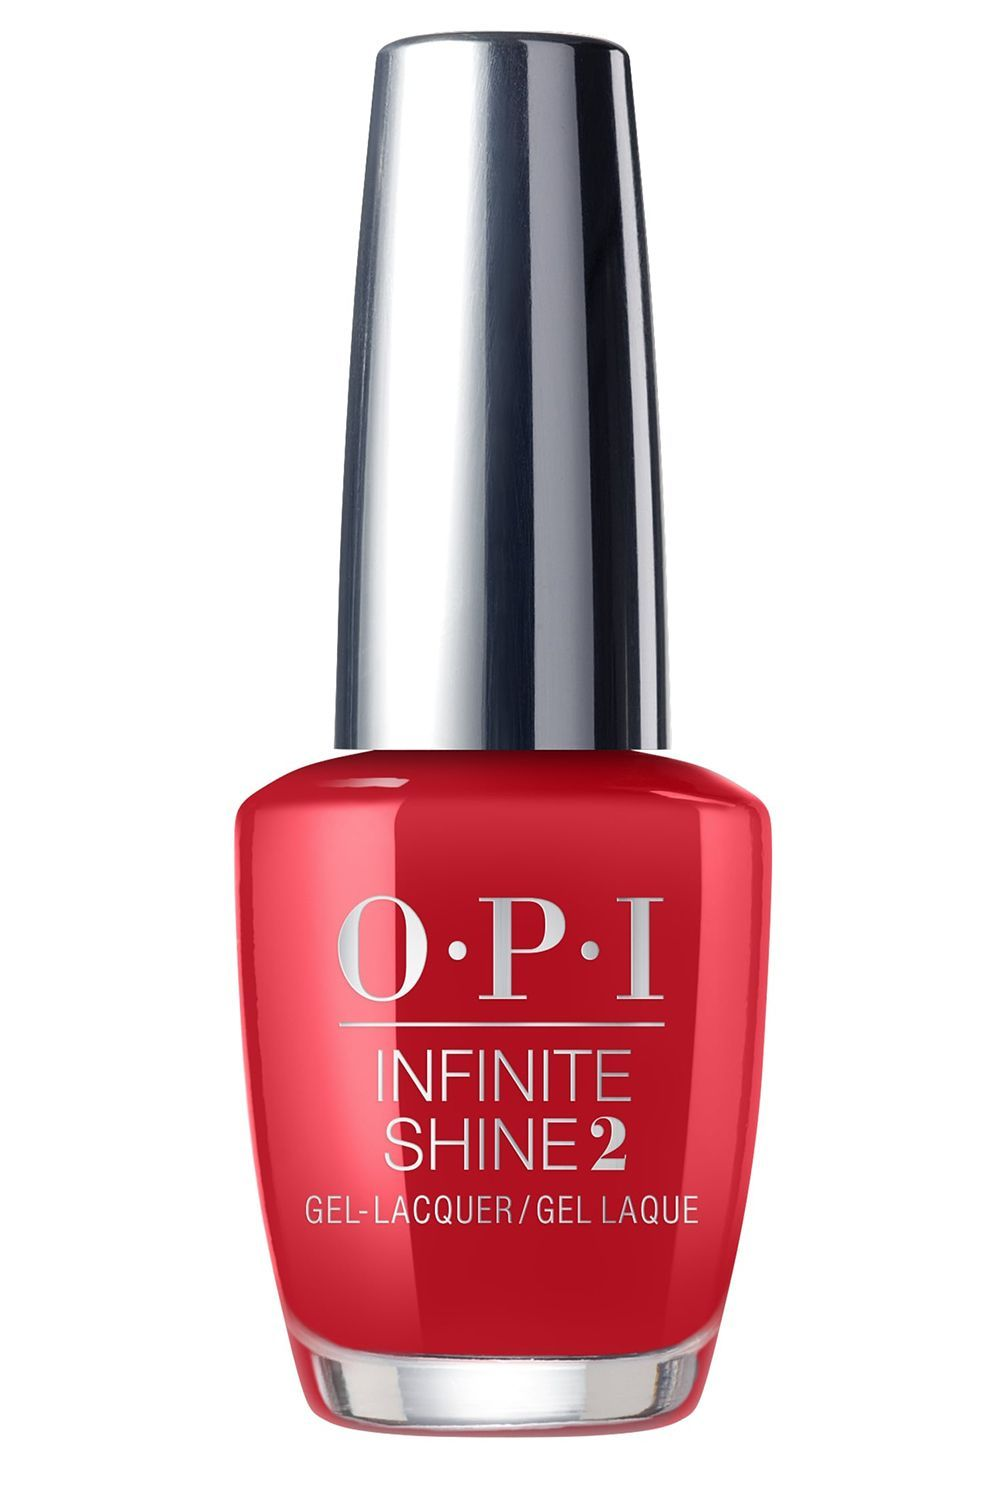 Opi Infinite Shine Nail Laquer In Big Apple Red